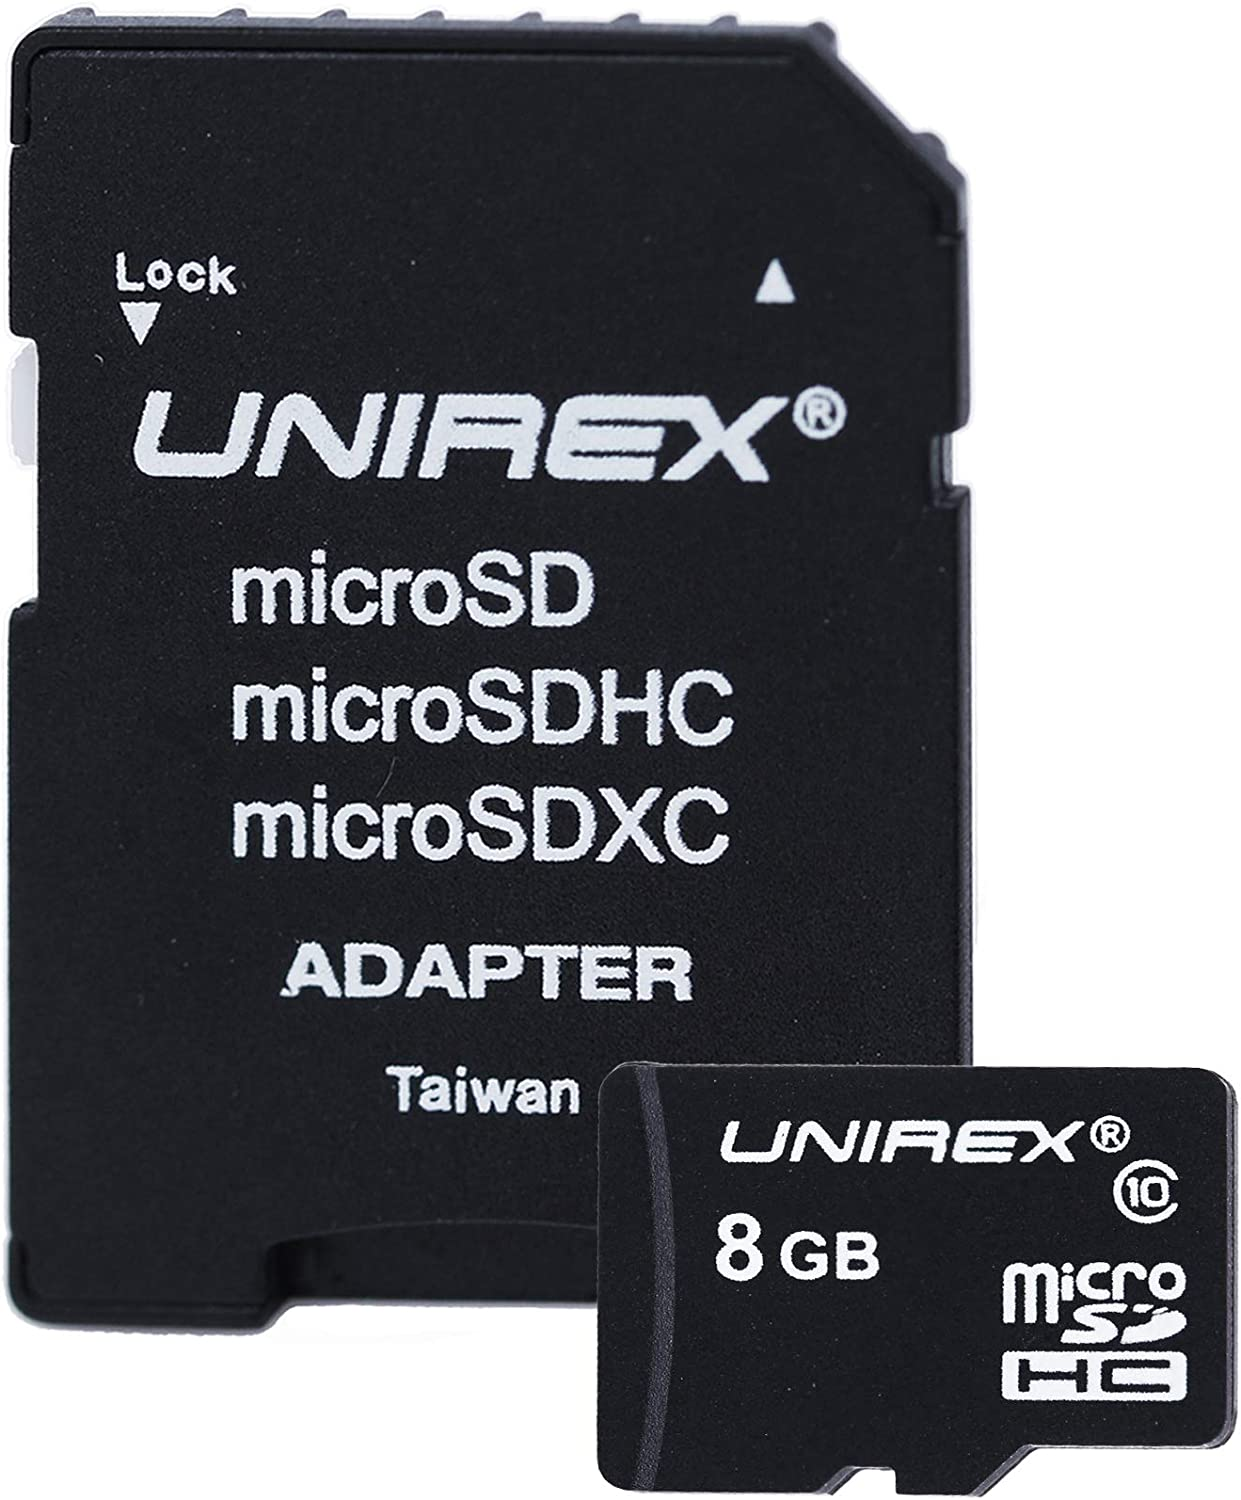 8GB Camera Storage Solution Adapter Kit - SD Card Adapter with Micro SD Memory Card - Compatible with Tablet, Computer, Laptop, Camera, Switch and Cell Phone - Class 4